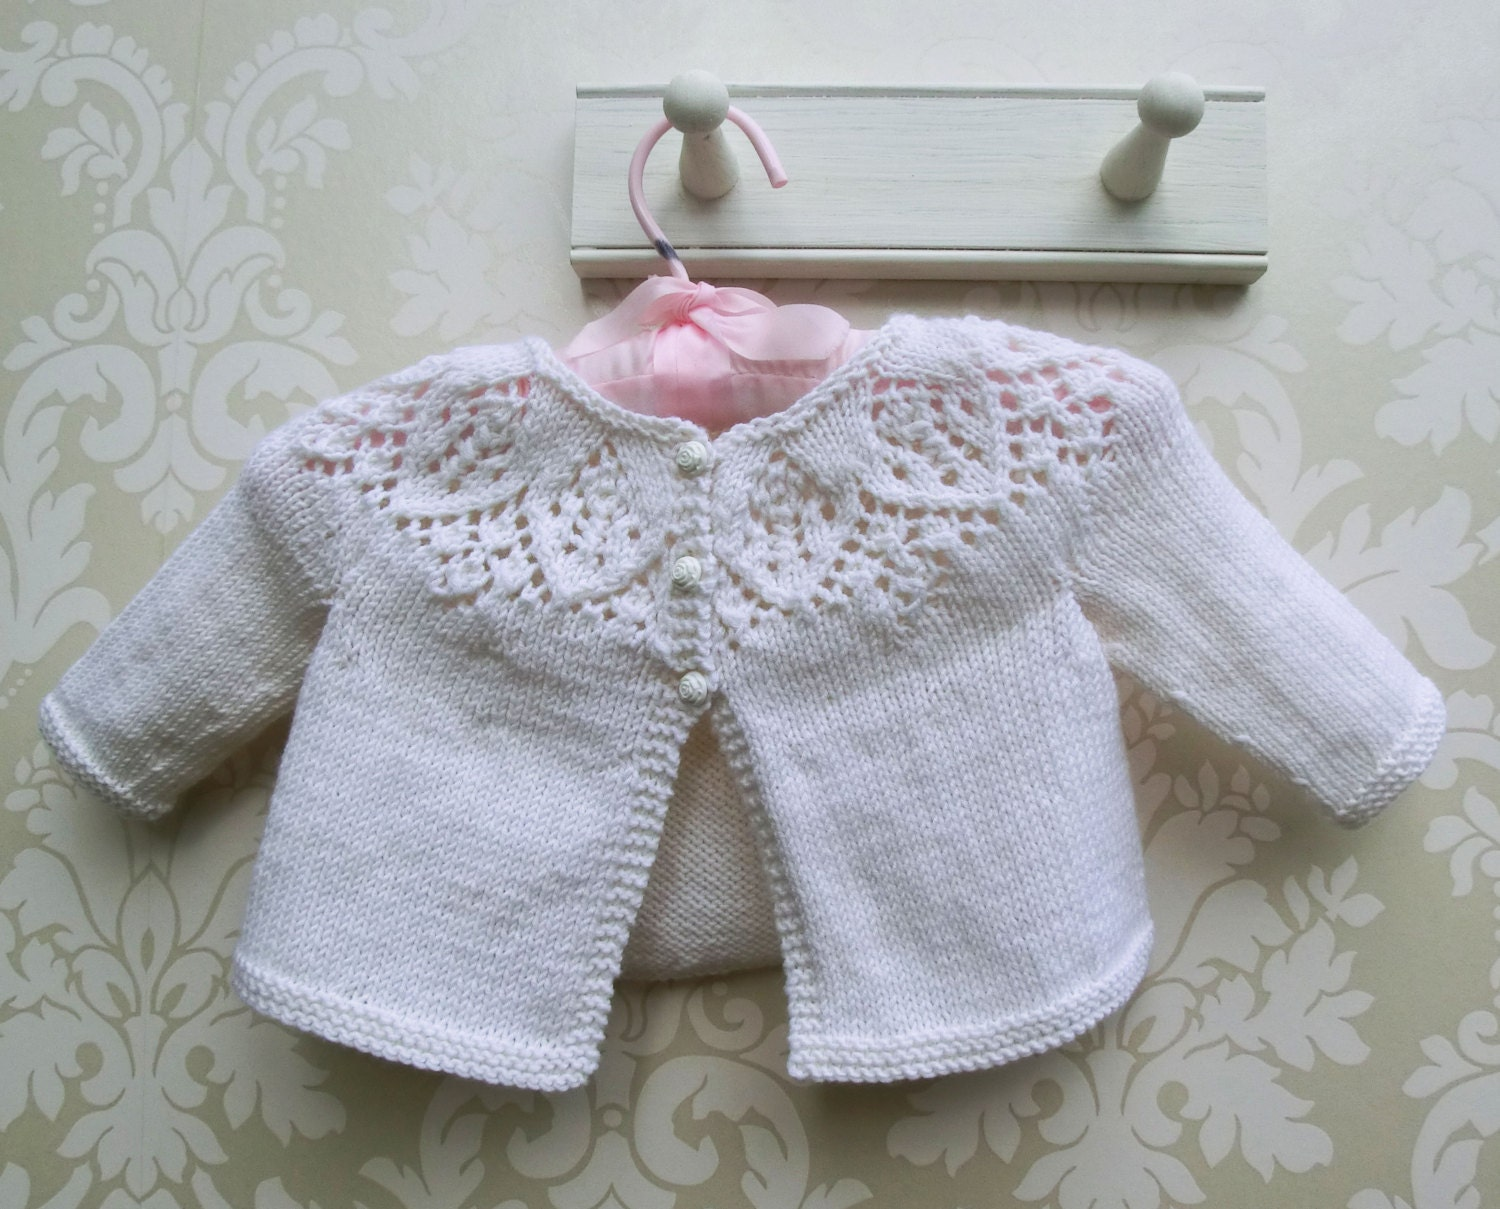 Knitting Patterns Kits : Knitting Kit for Baby Cardigan Meredith Baby Cardigan